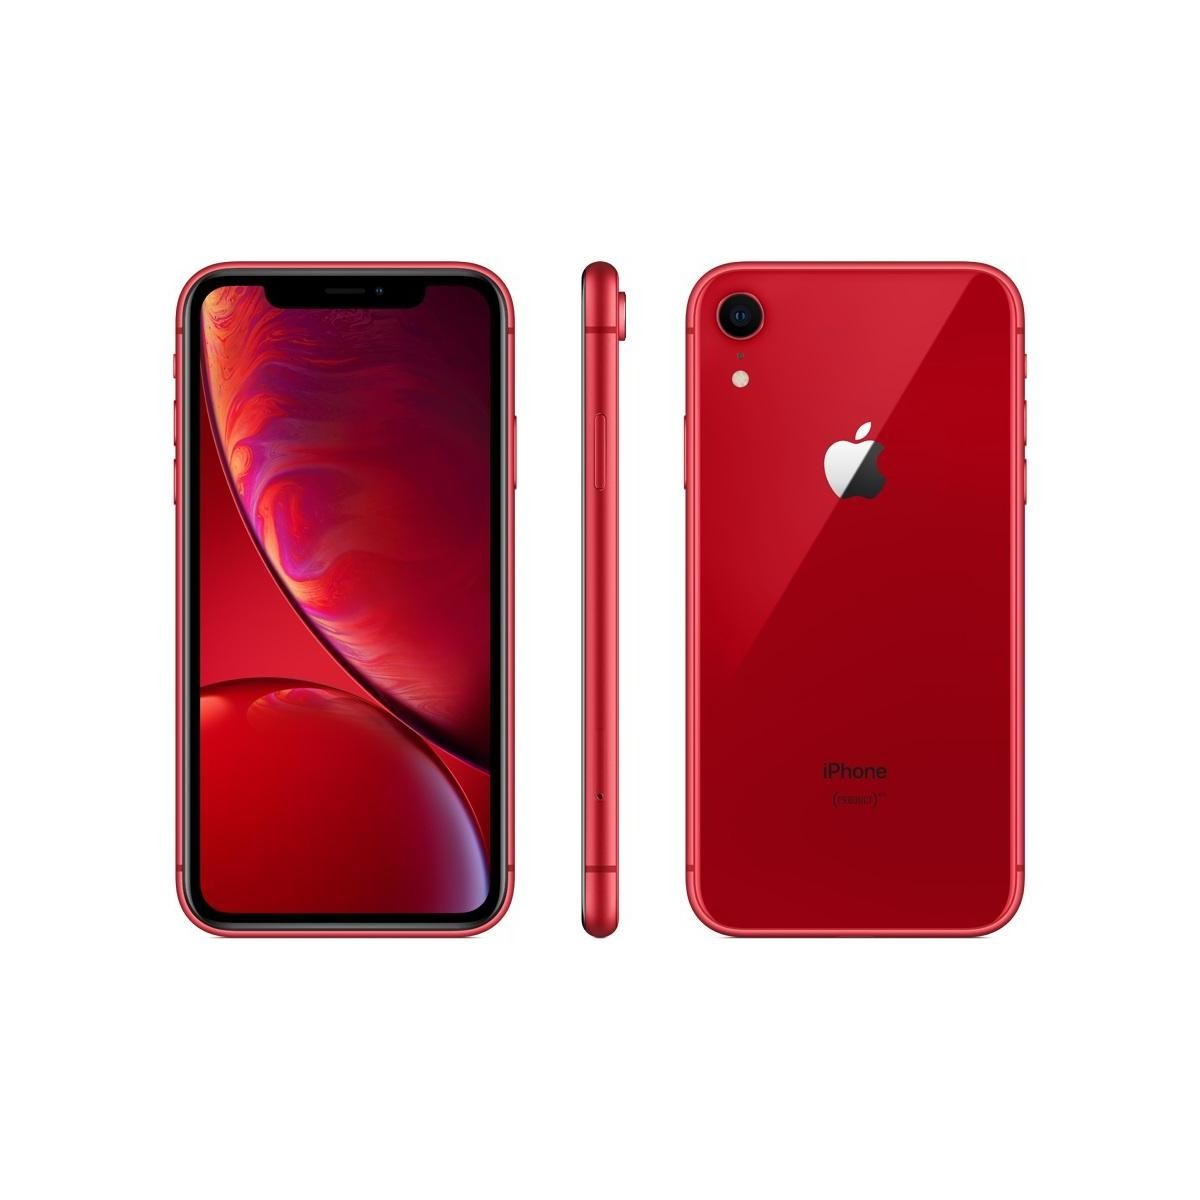 Apple iPhone XR 64GB - (Product) RED | BIG W